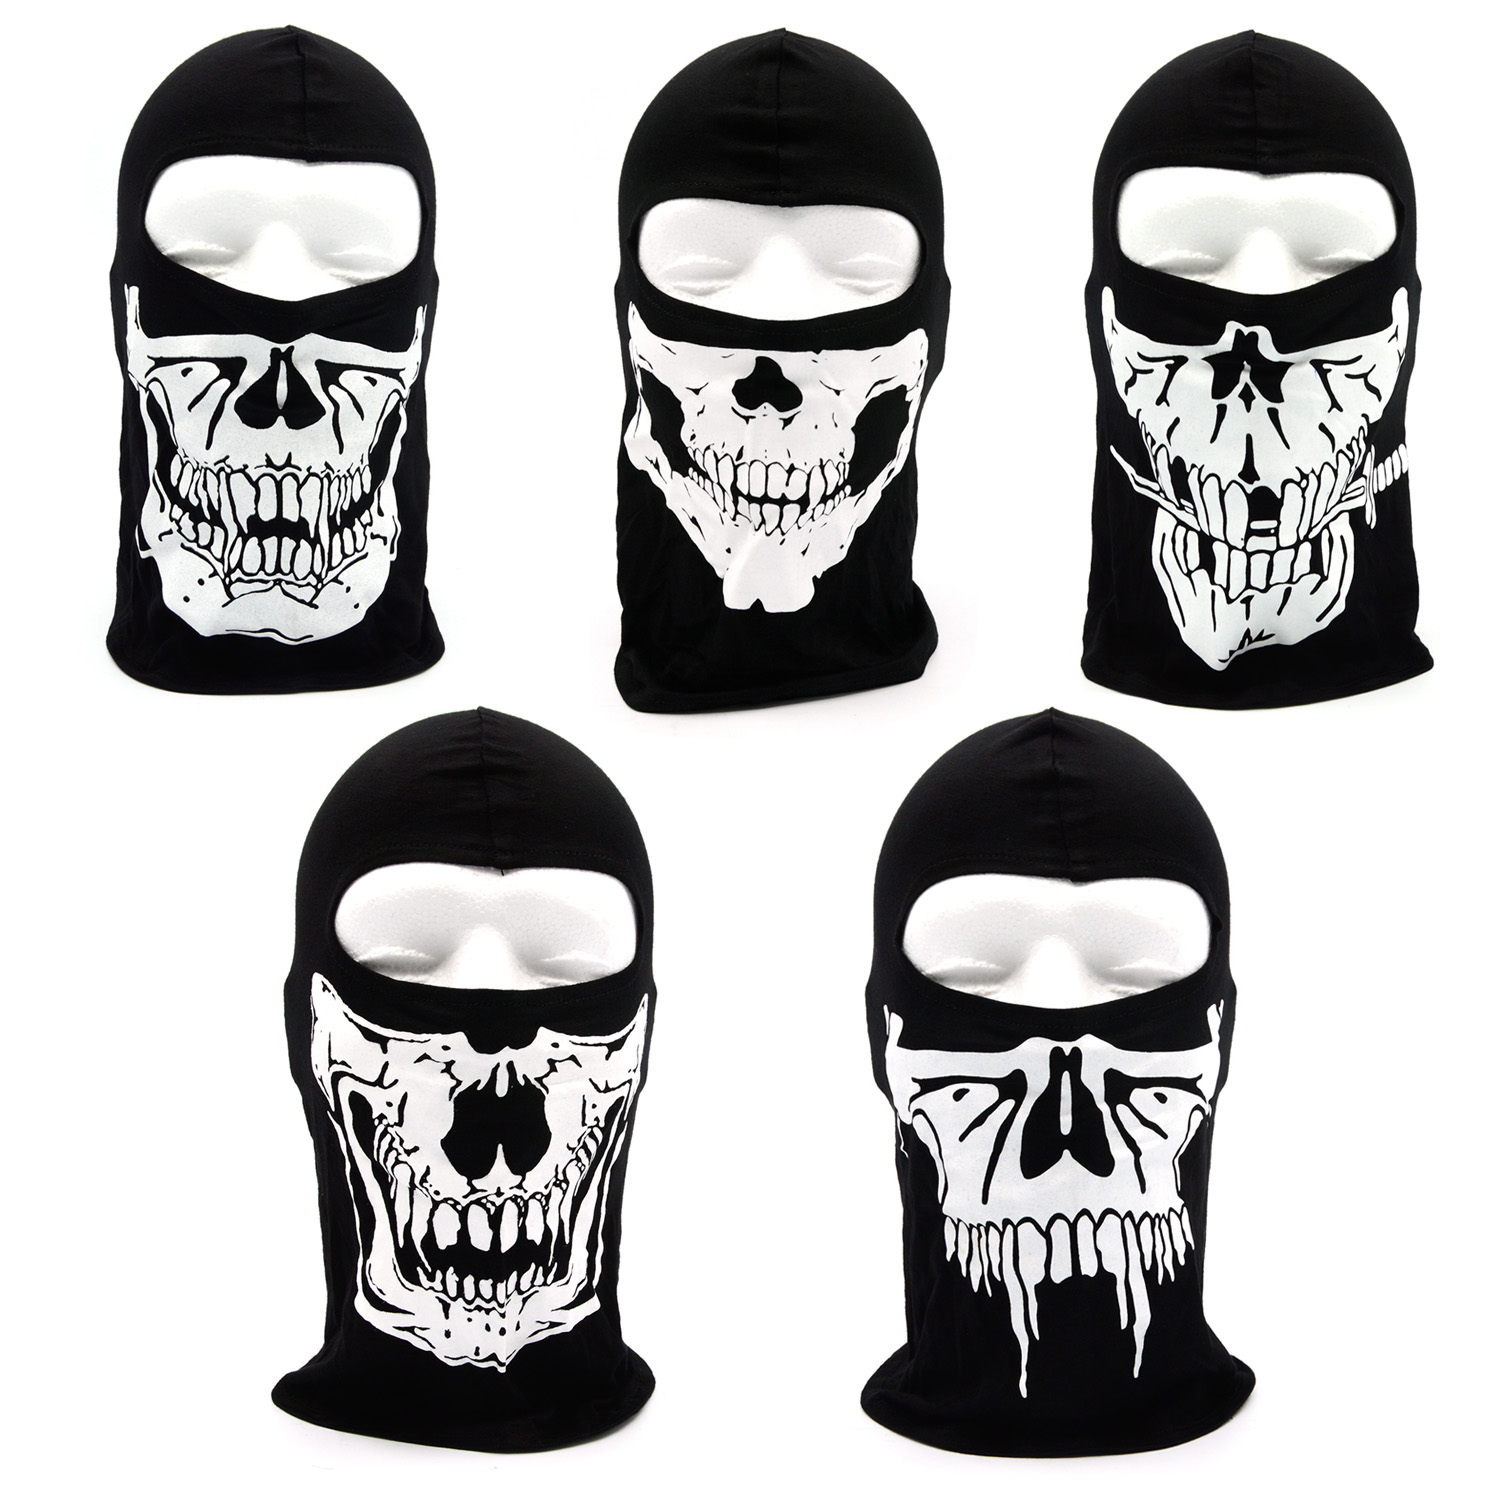 Compare Prices on Ghost Skull Ski Mask- Online Shopping/Buy Low ...